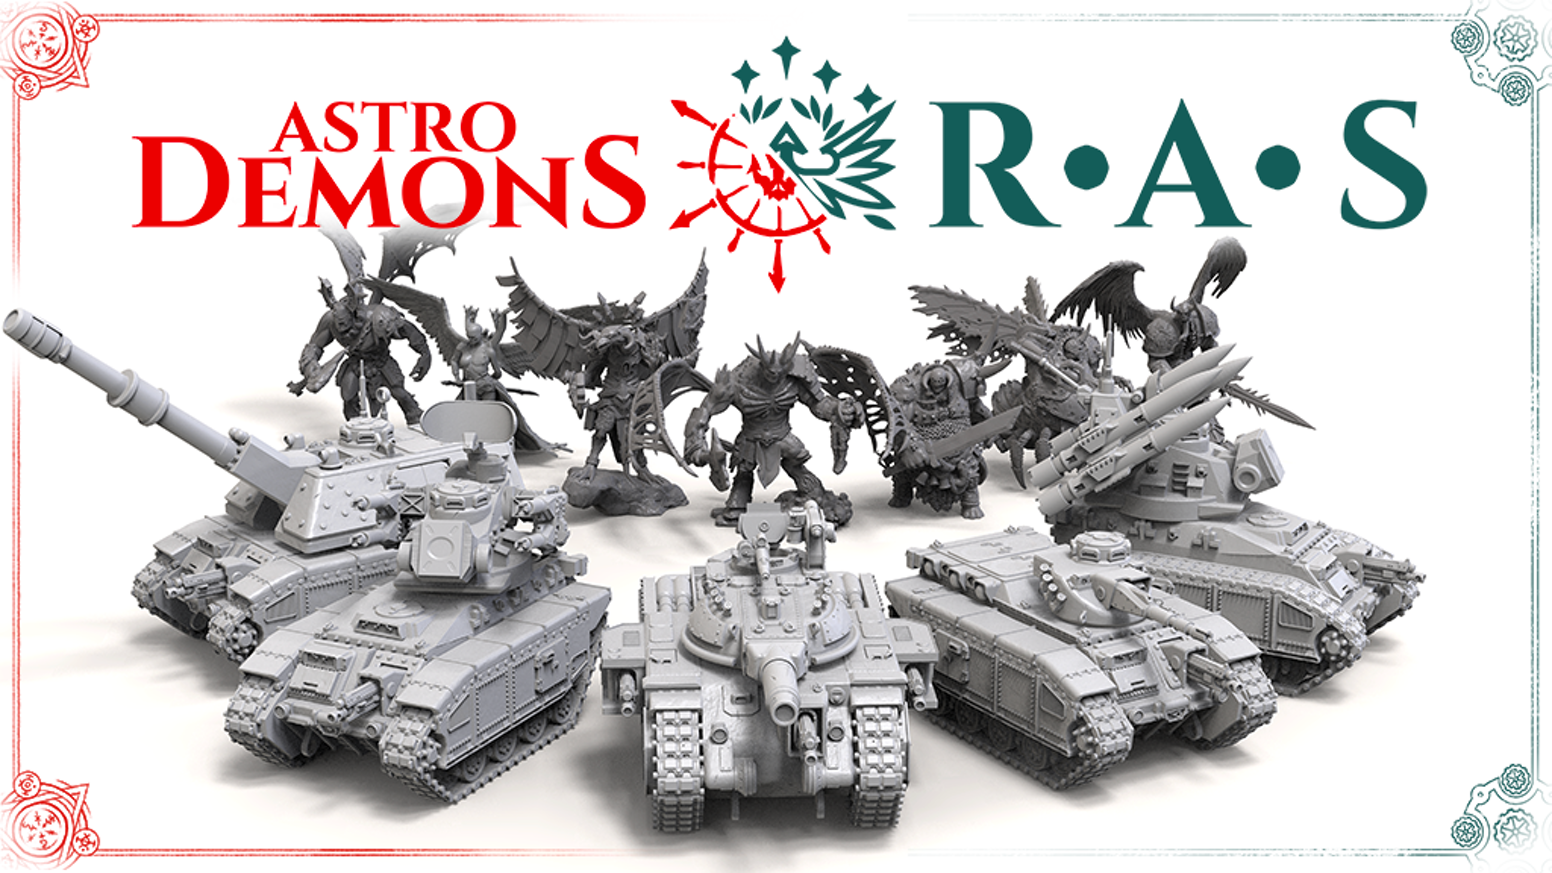 High-quality resin miniatures for fans of wargaming, collectors and painters.